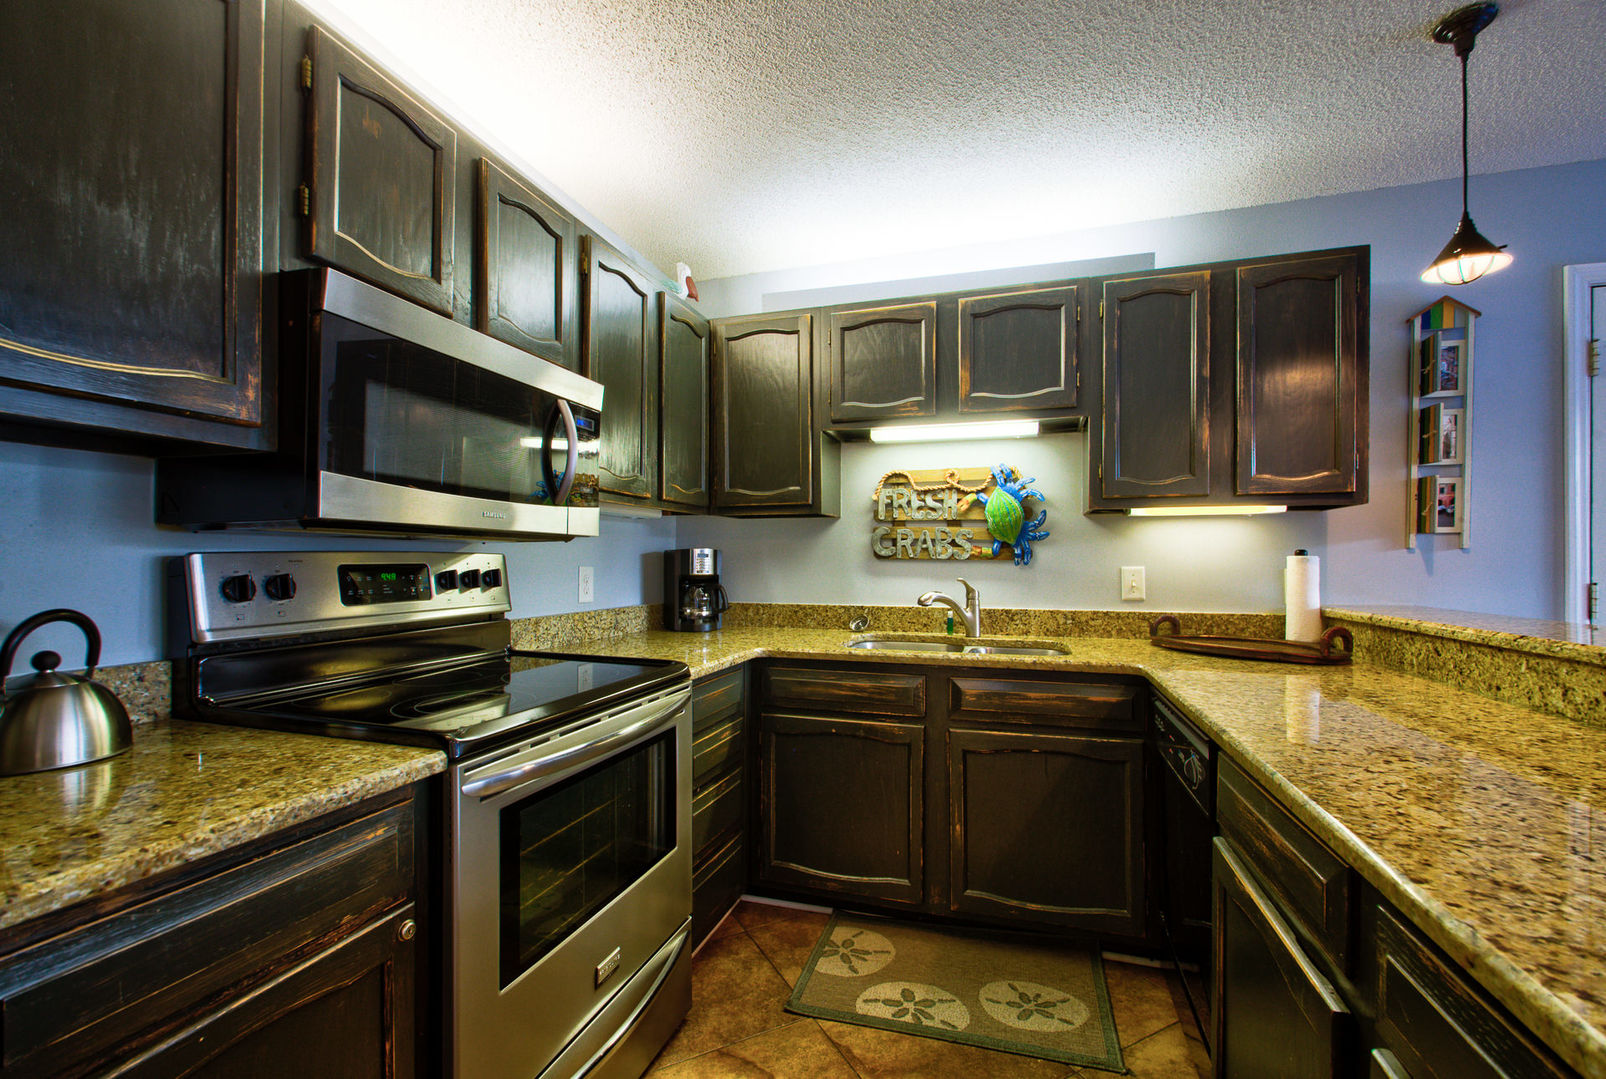 Prepare a Meal in the Fully Equipped Kitchen